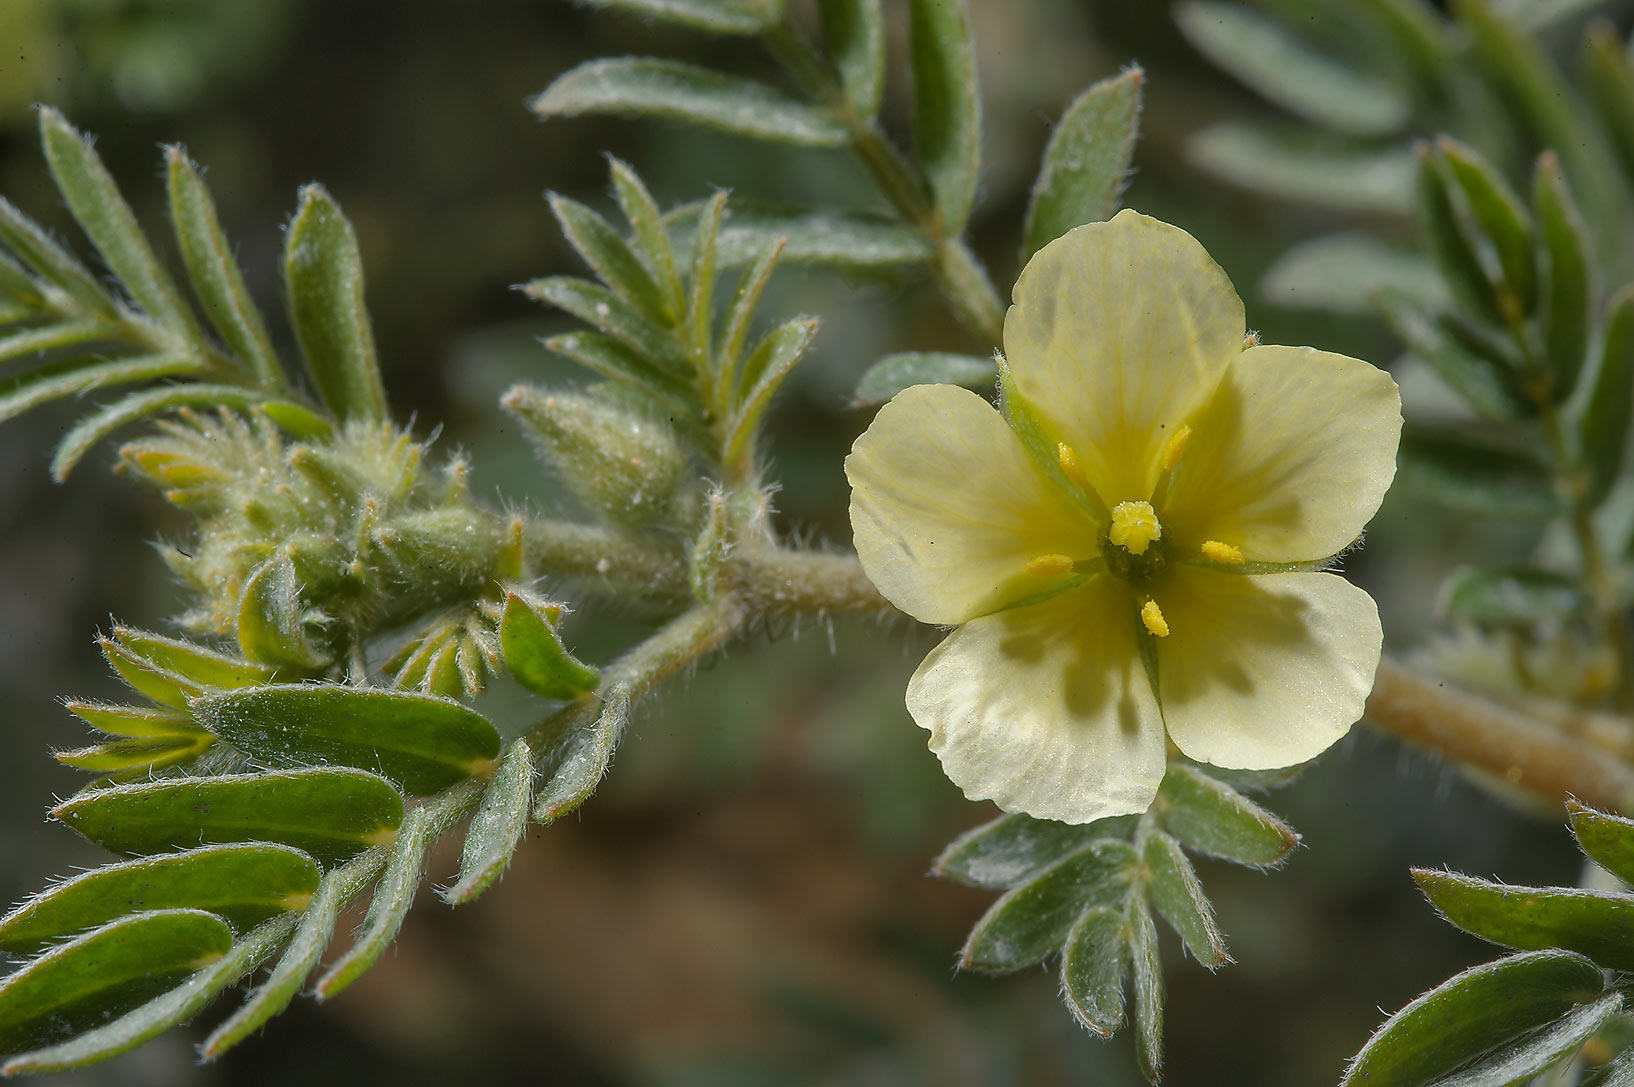 Flower of puncturevine (Caltrop, Tribulus...hasak) on a roadside in southern Qatar